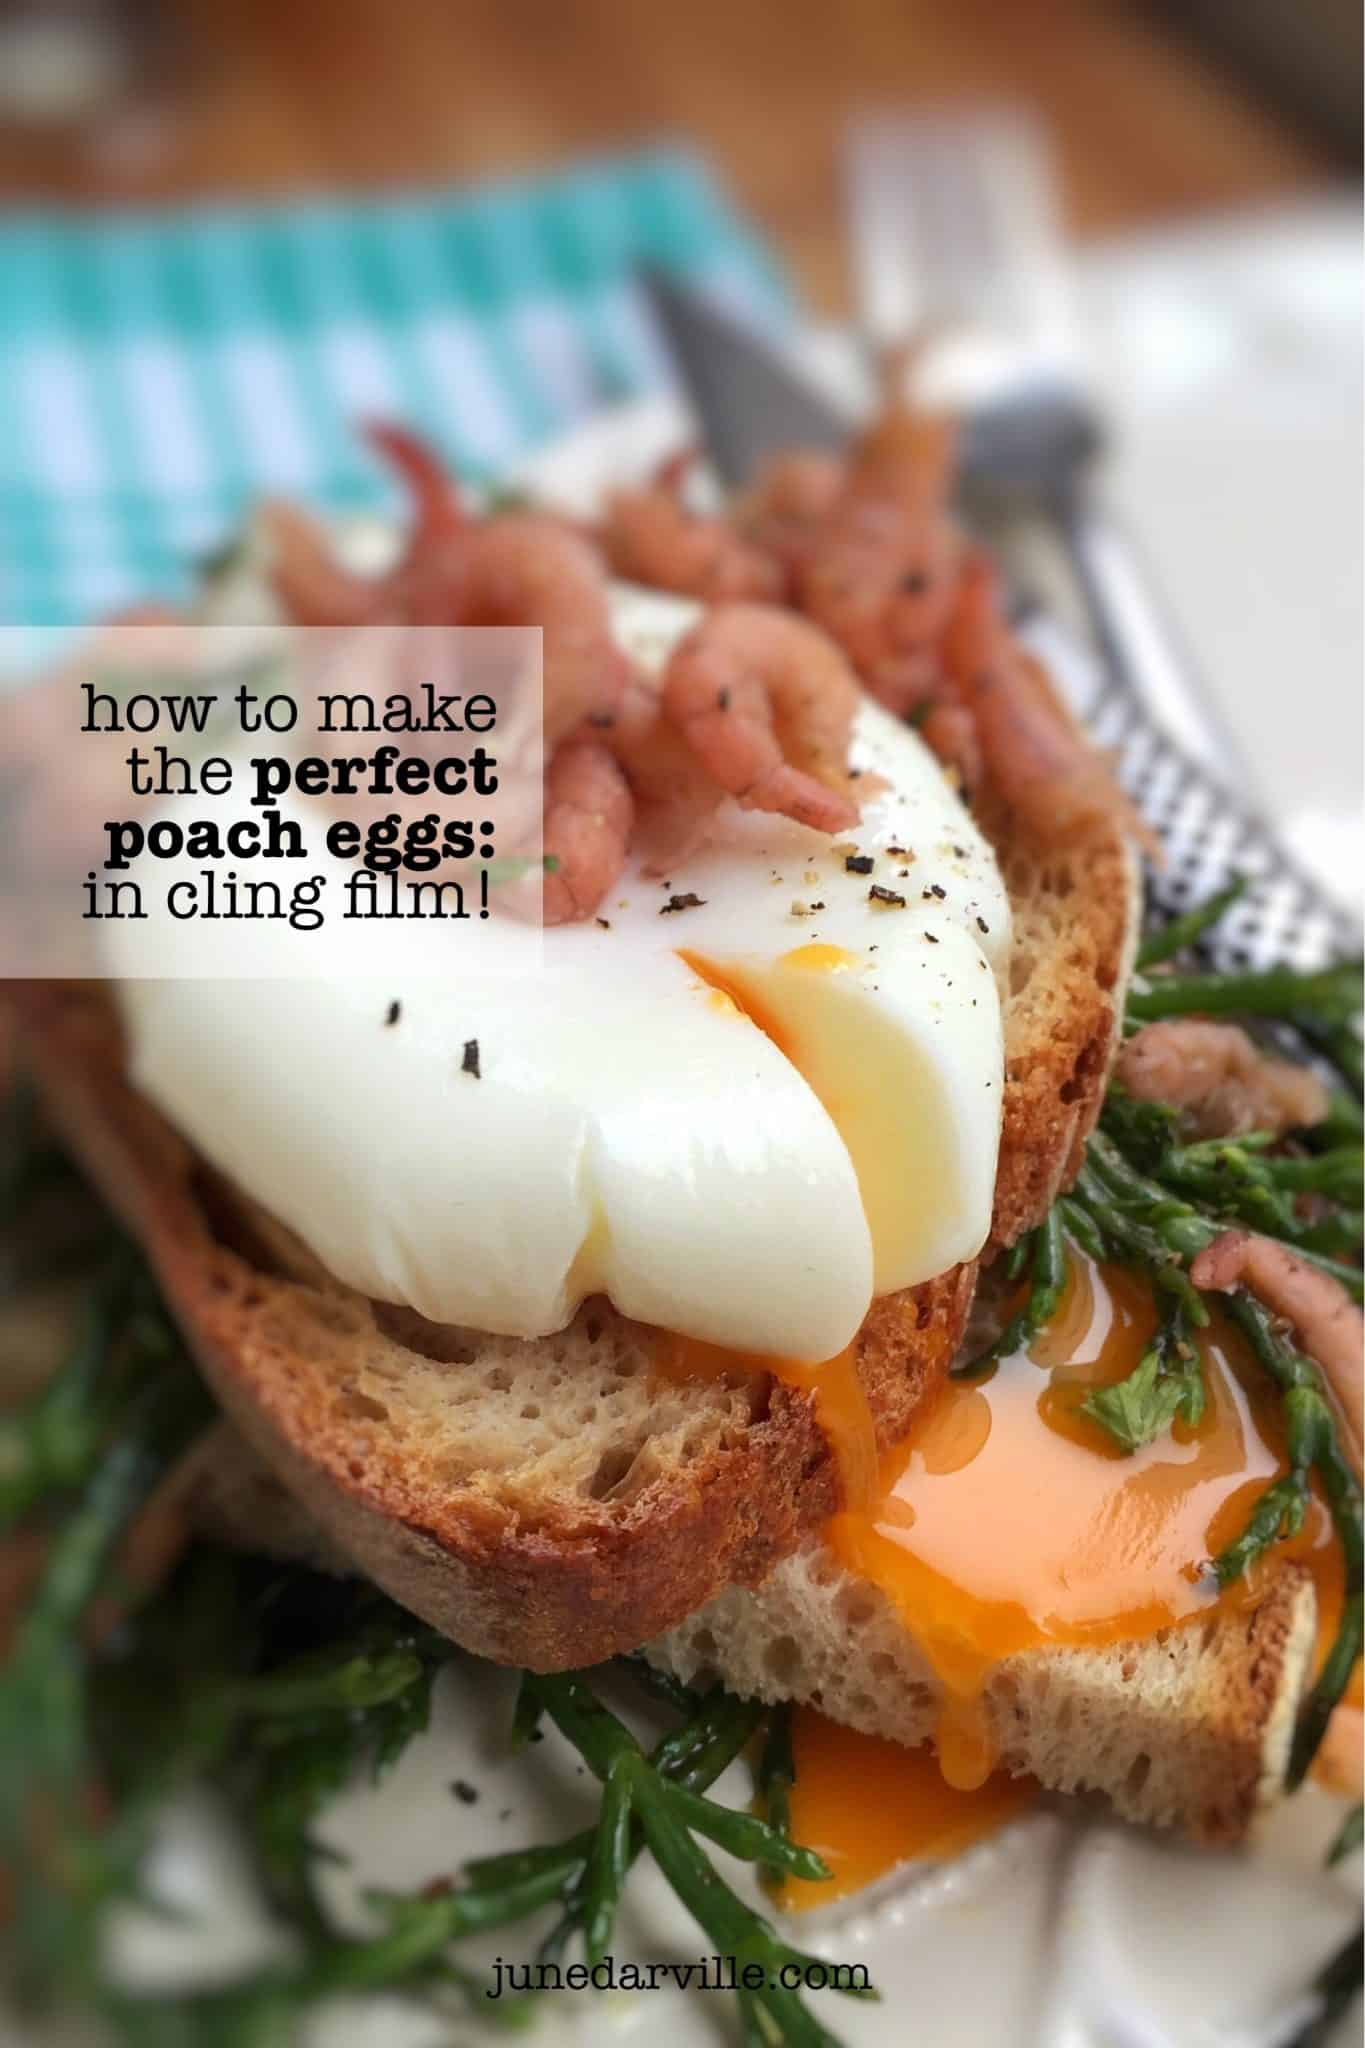 Ever heard of the Arzak egg? Here's how to make perfect poached eggs: take a look at this easy cling film method with pictures!